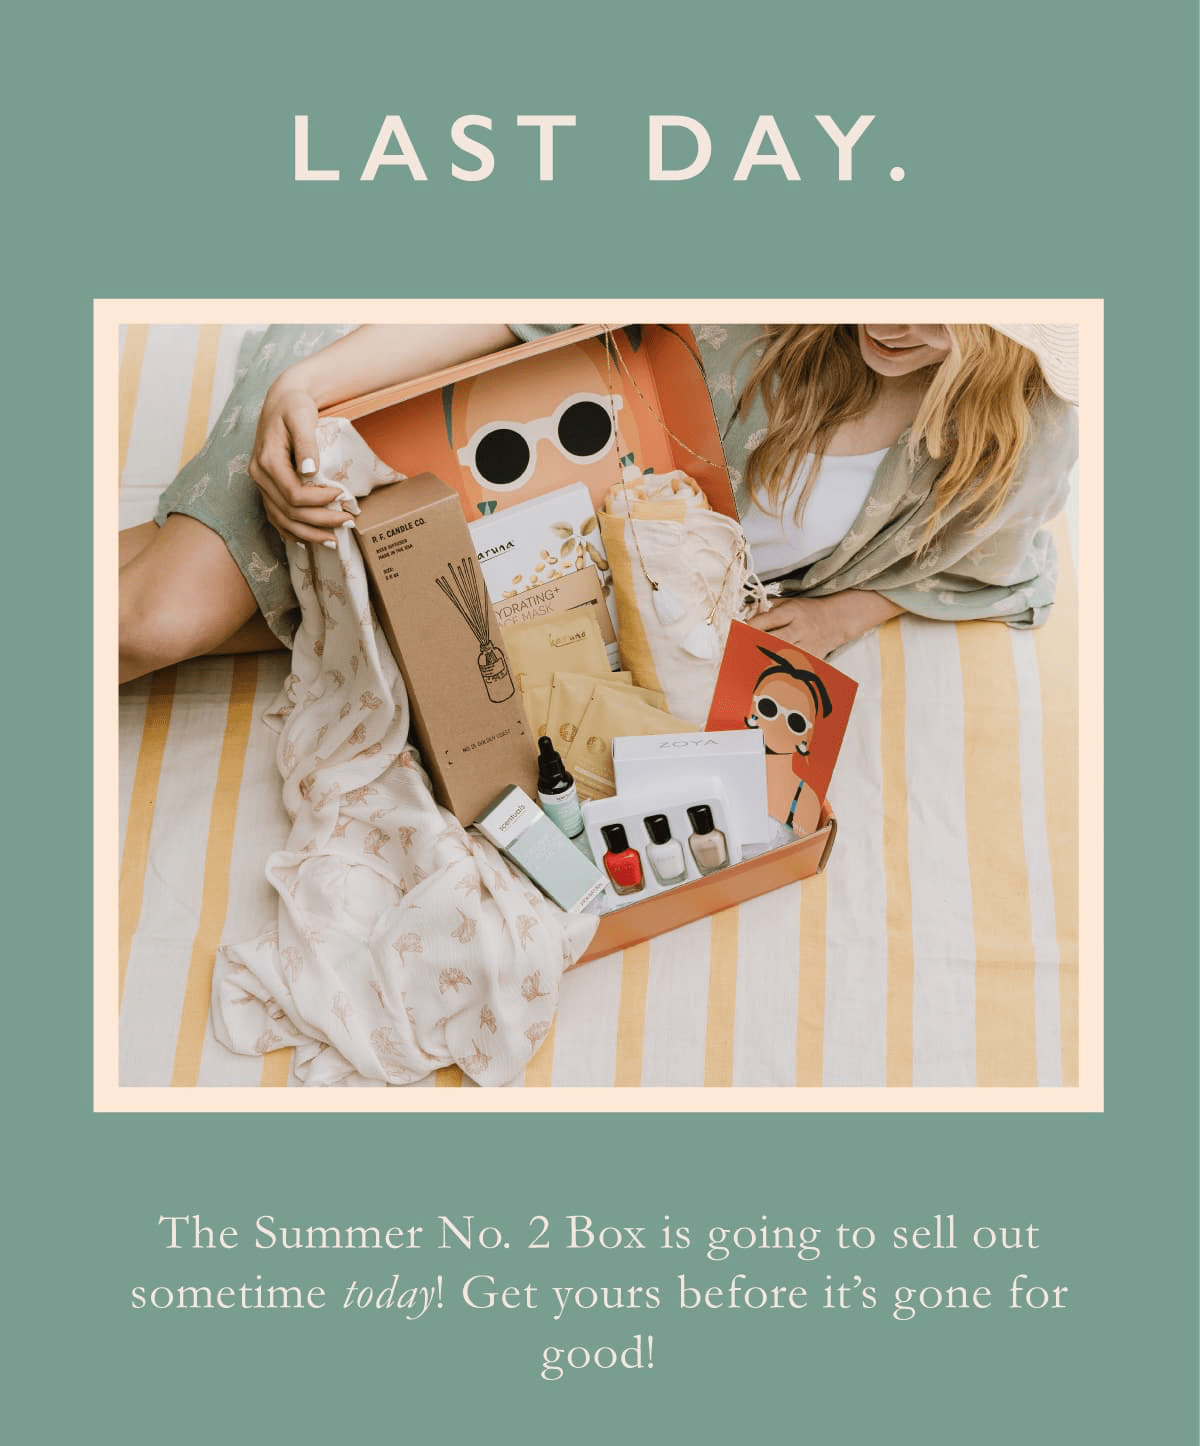 LAST DAY – CAUSEBOX Flash Sale: Get $15 Off Your First Box!